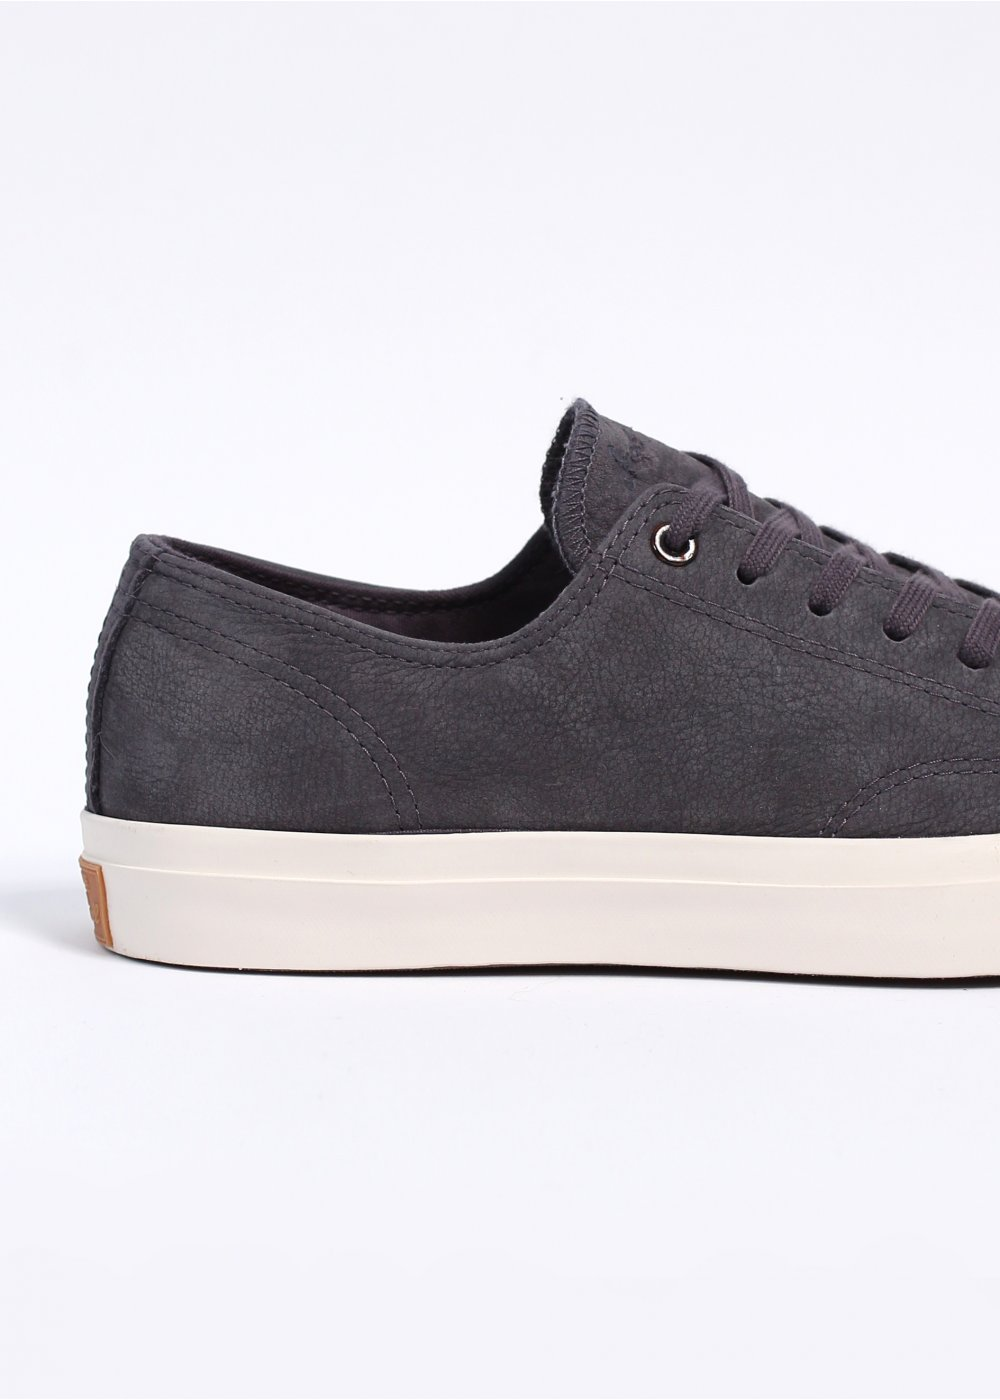 Jack Purcell Ox Low - Graphite